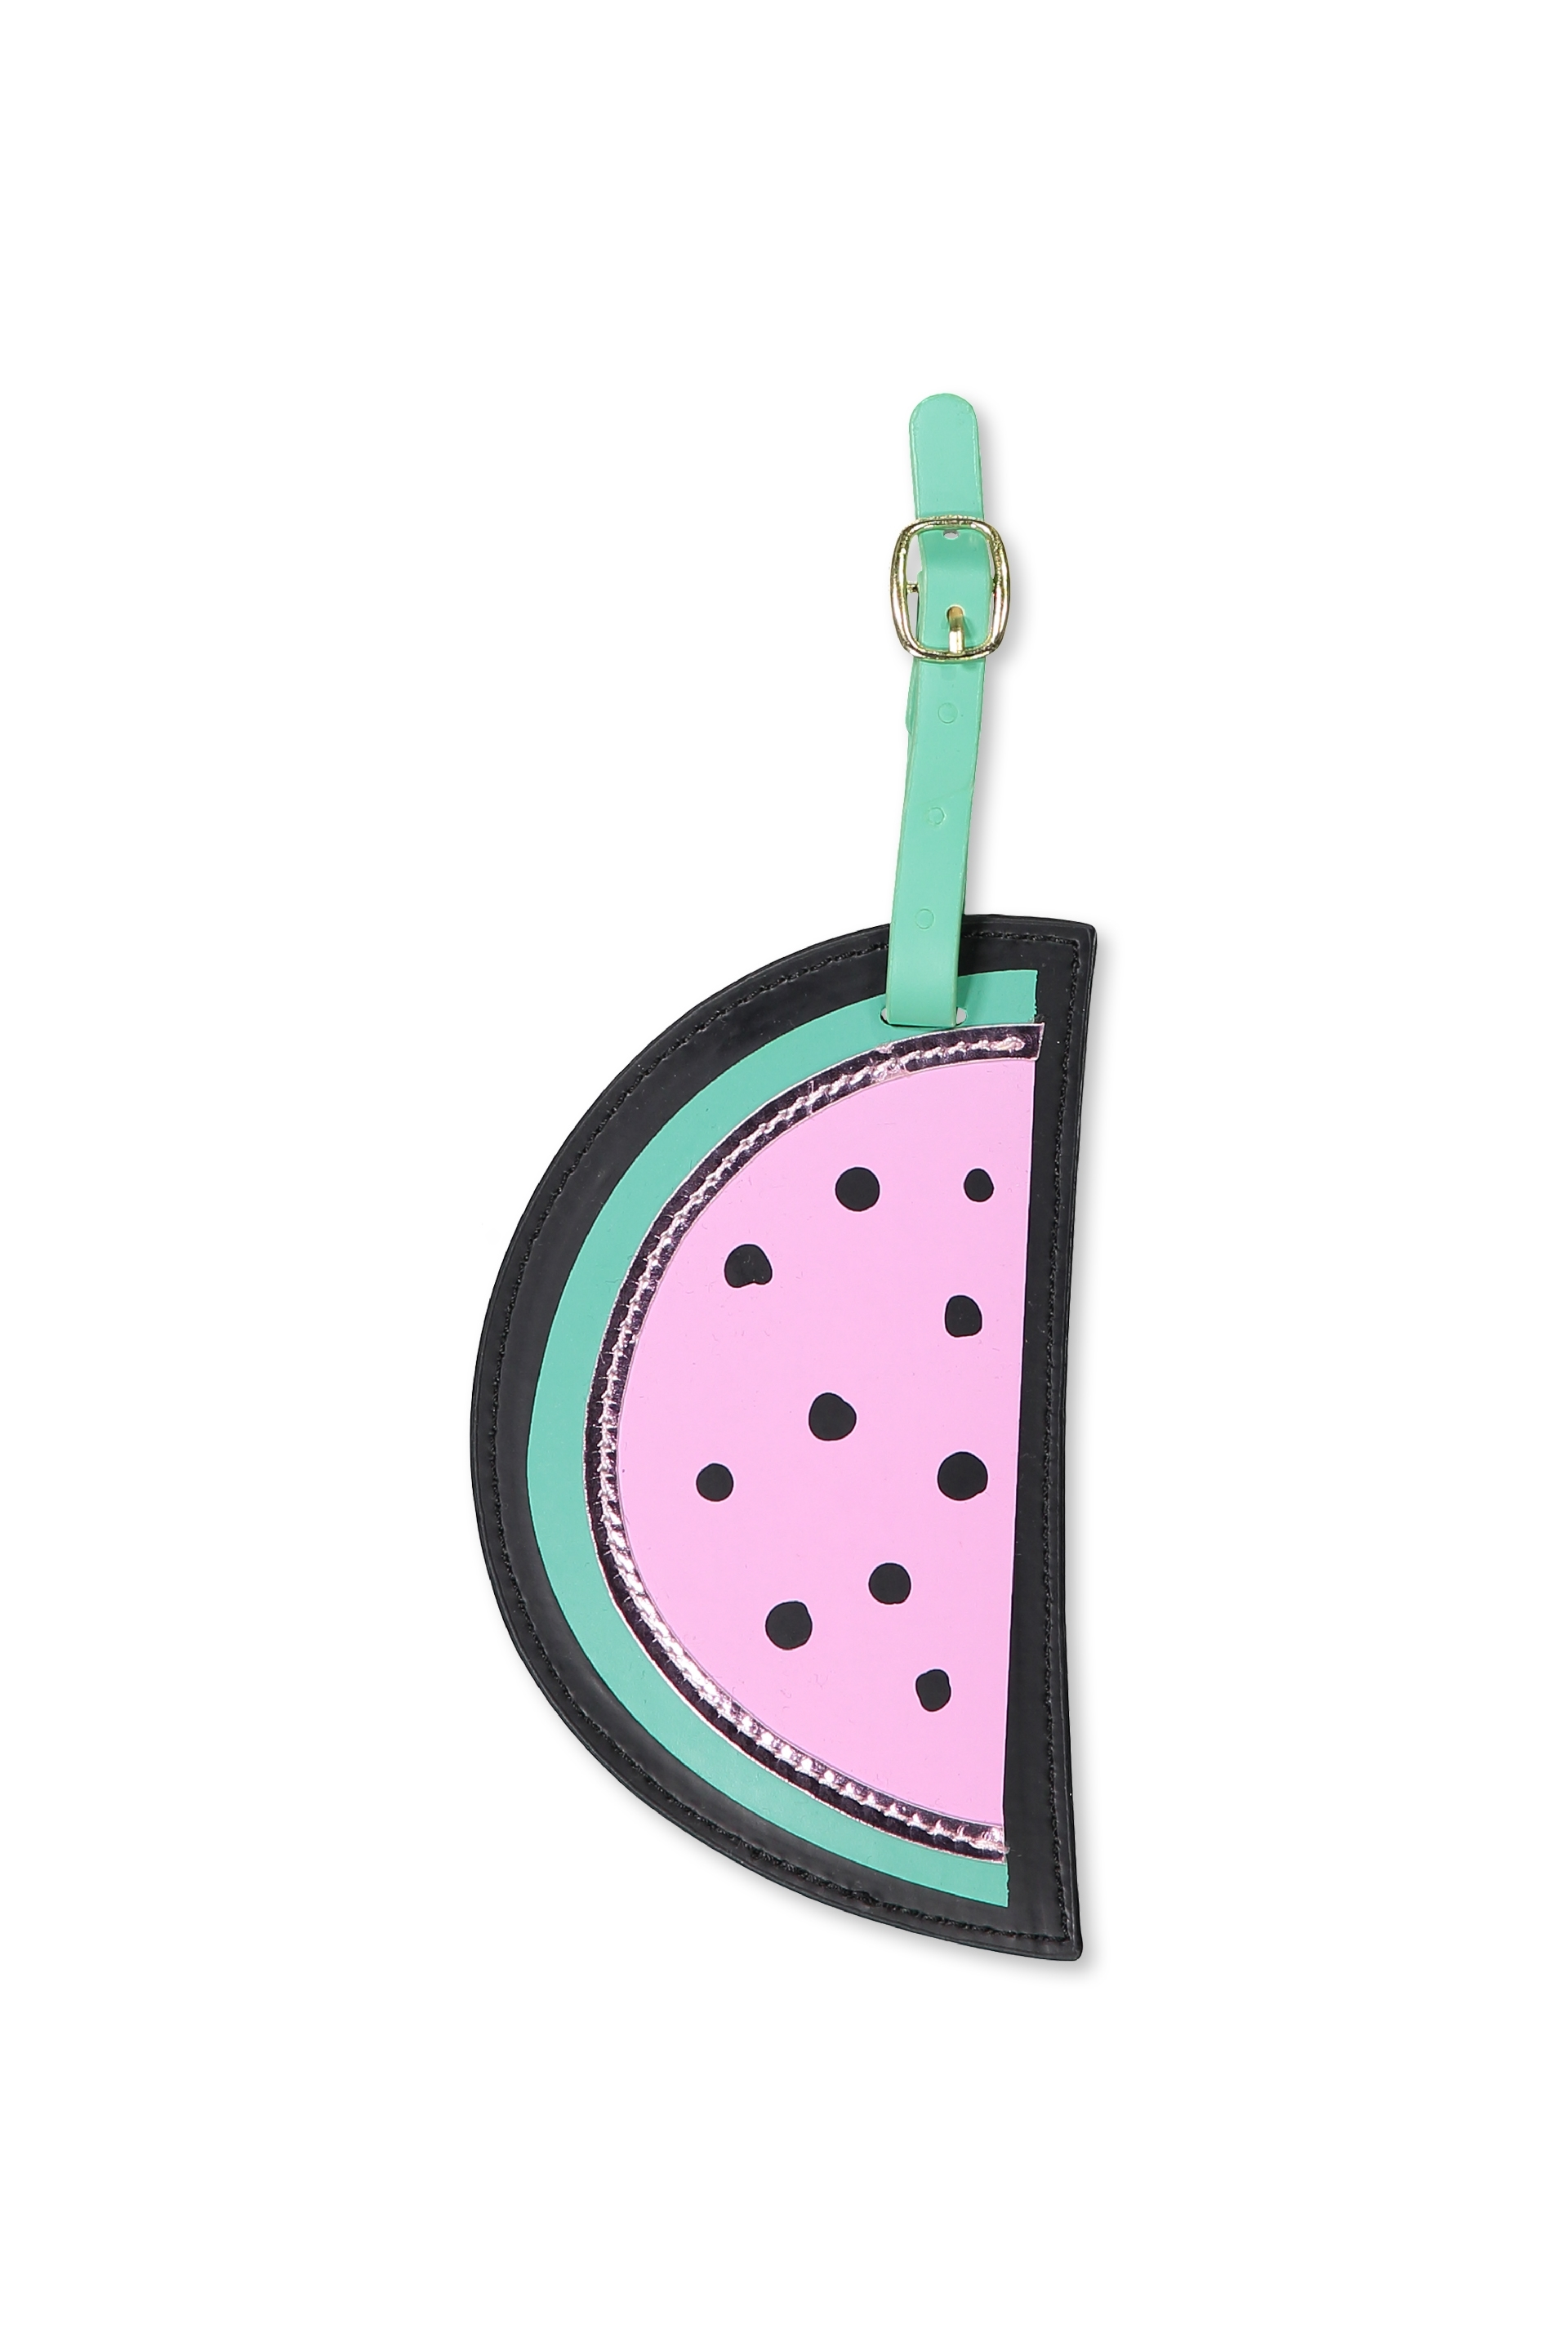 Typo - Shape Shifter Luggage Tag - Watermelon